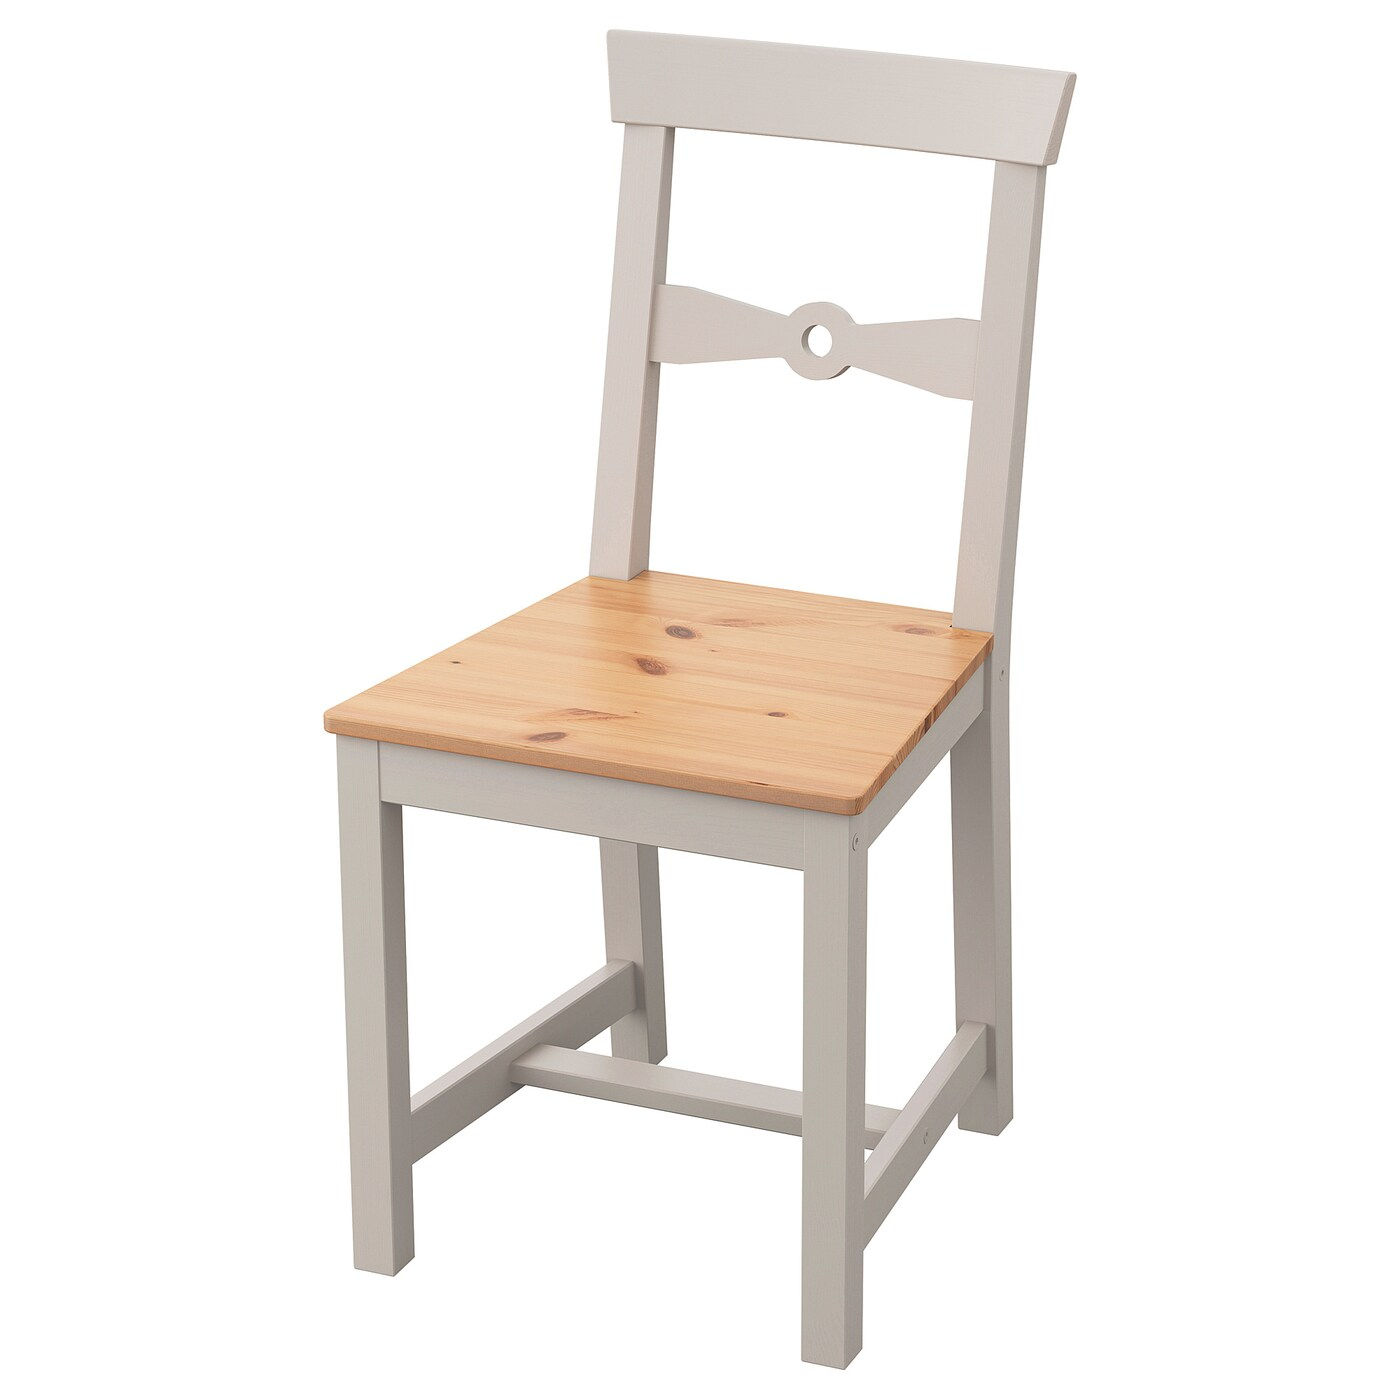 Ikea GAMLEBY Chair, light antique stain/gray